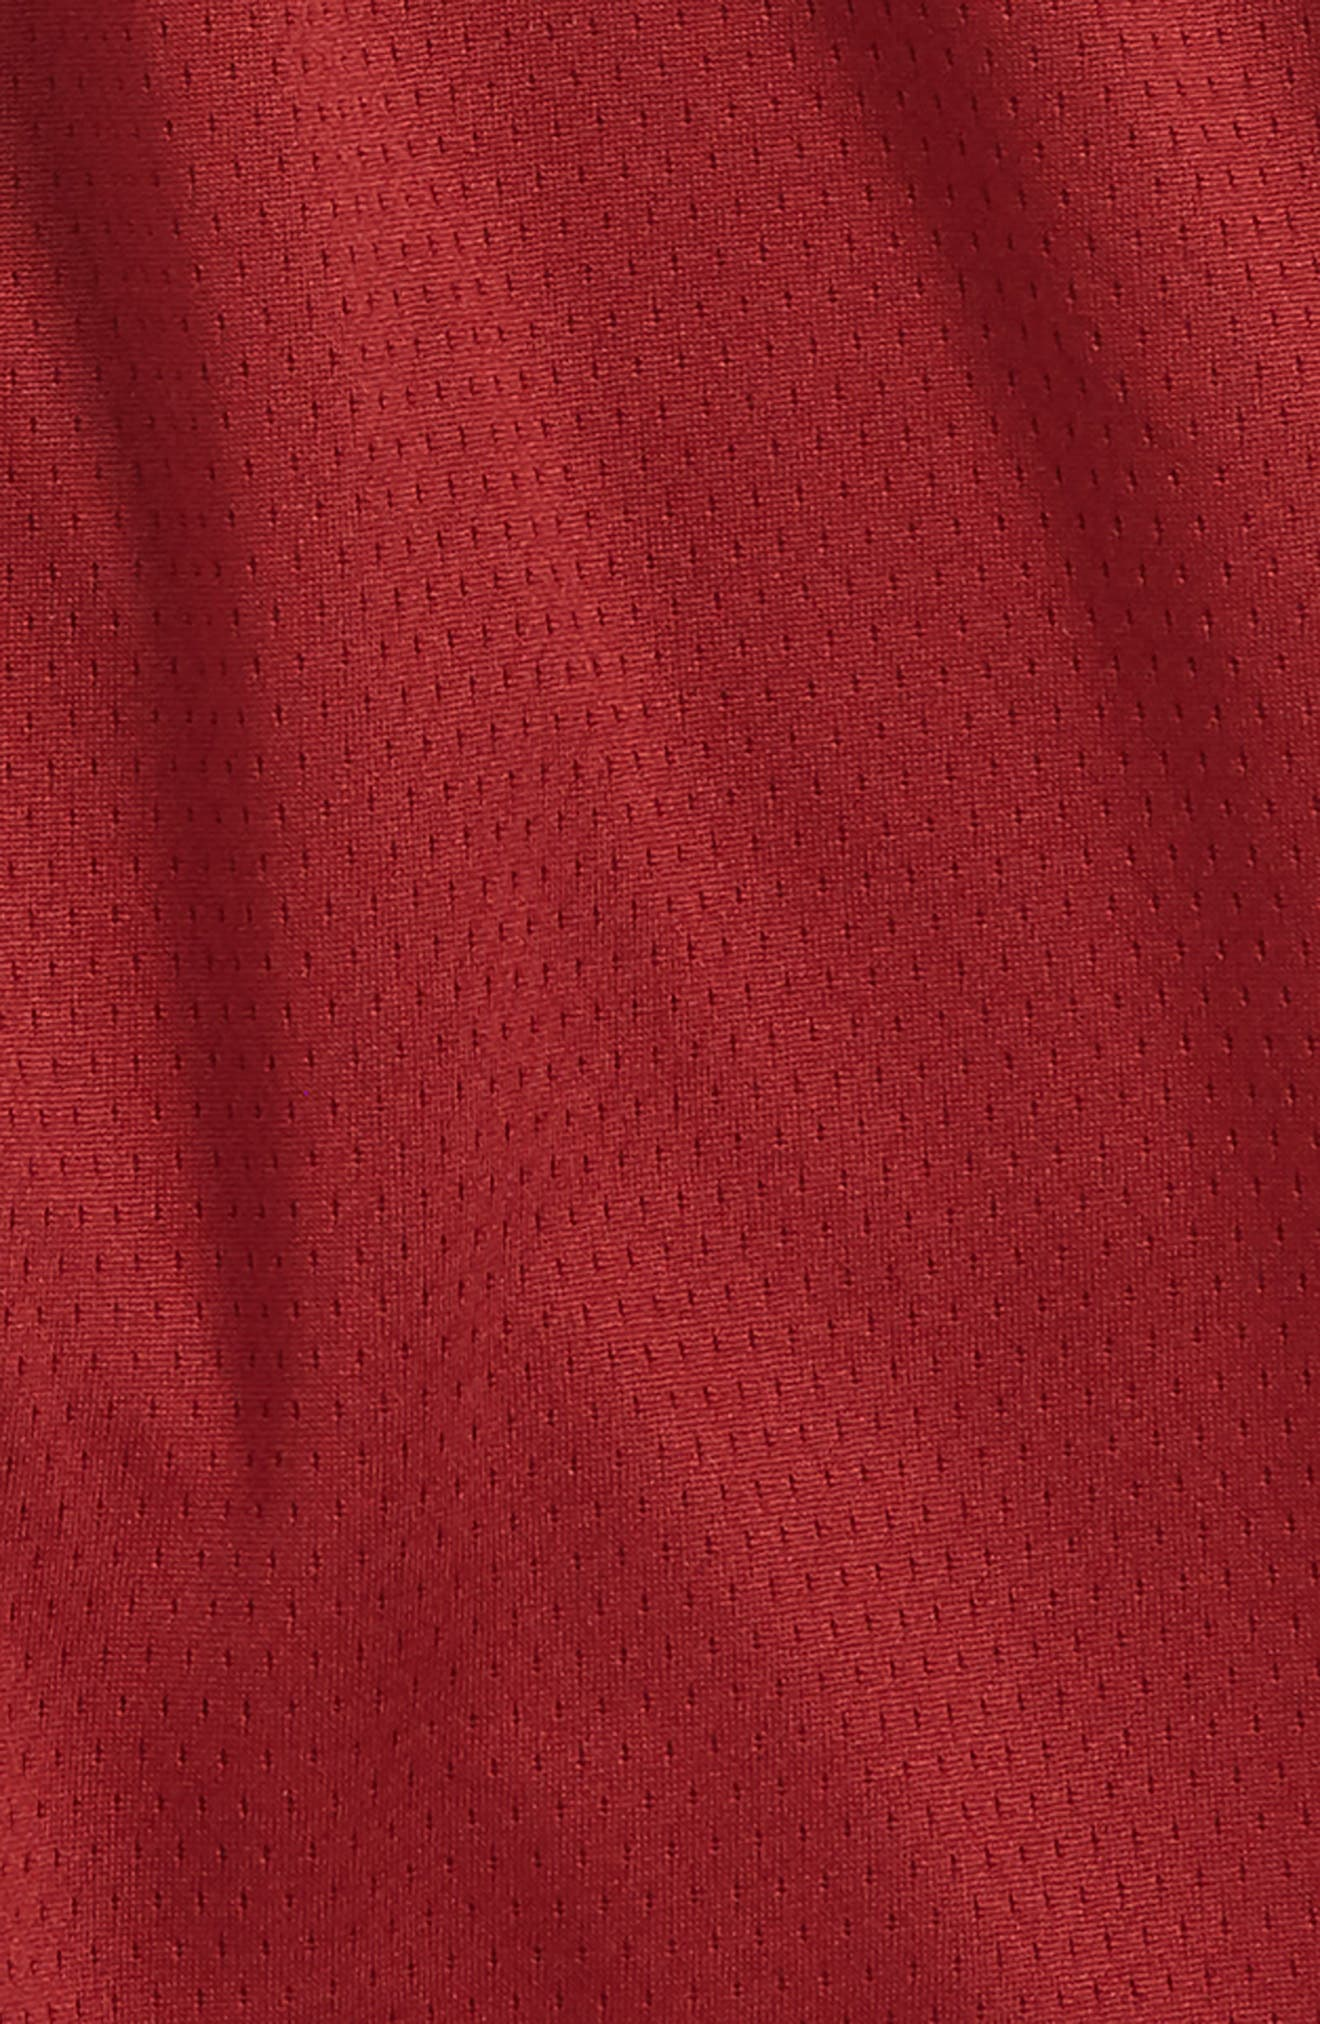 Cleveland Cavaliers Basketball Shorts,                             Alternate thumbnail 2, color,                             TEAM RED